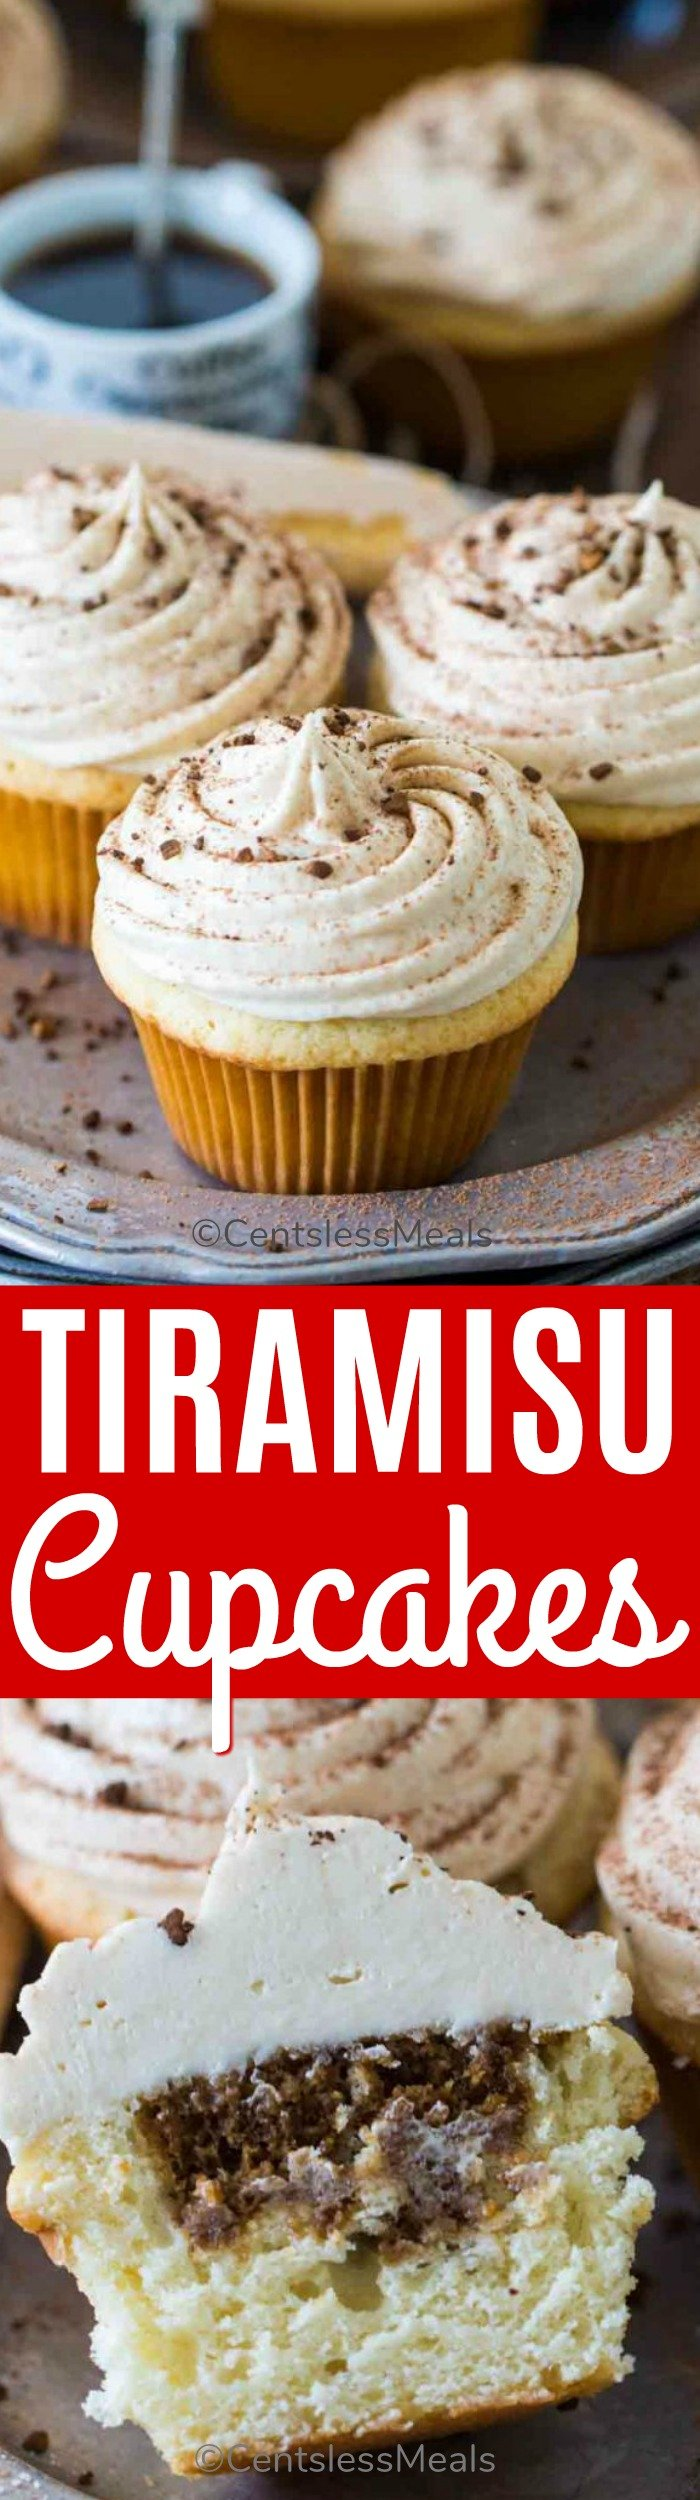 Tiramisu cupcakes on a plate and one cut in half with a title